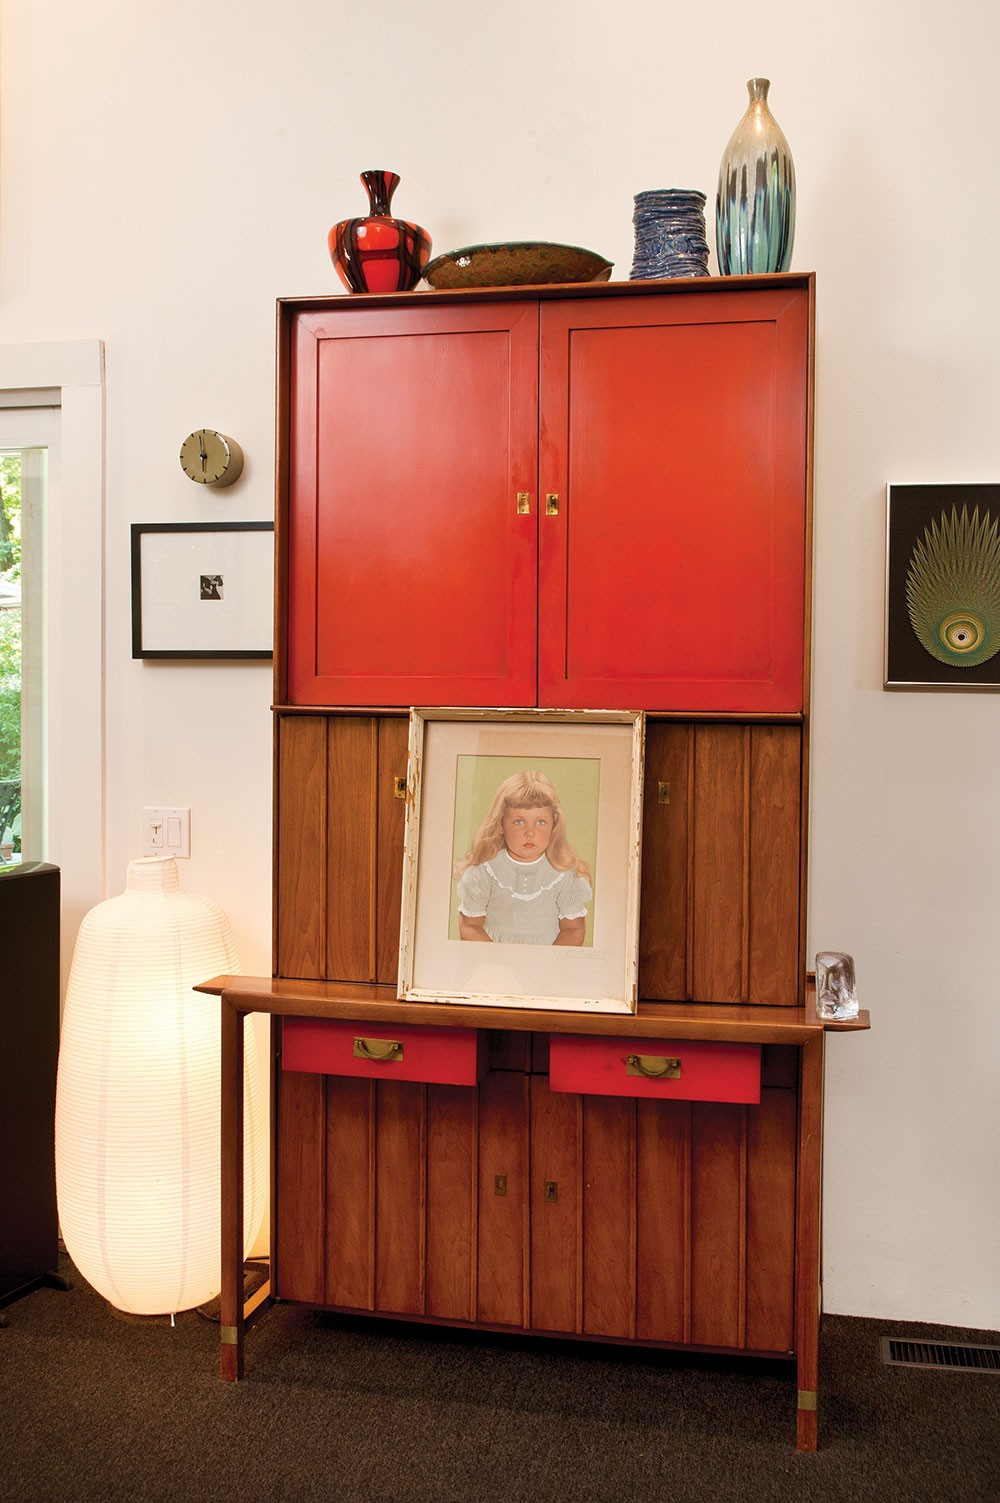 Double Duty Furniture Where The Doors Are Always Open House Profiles Hudson Valley